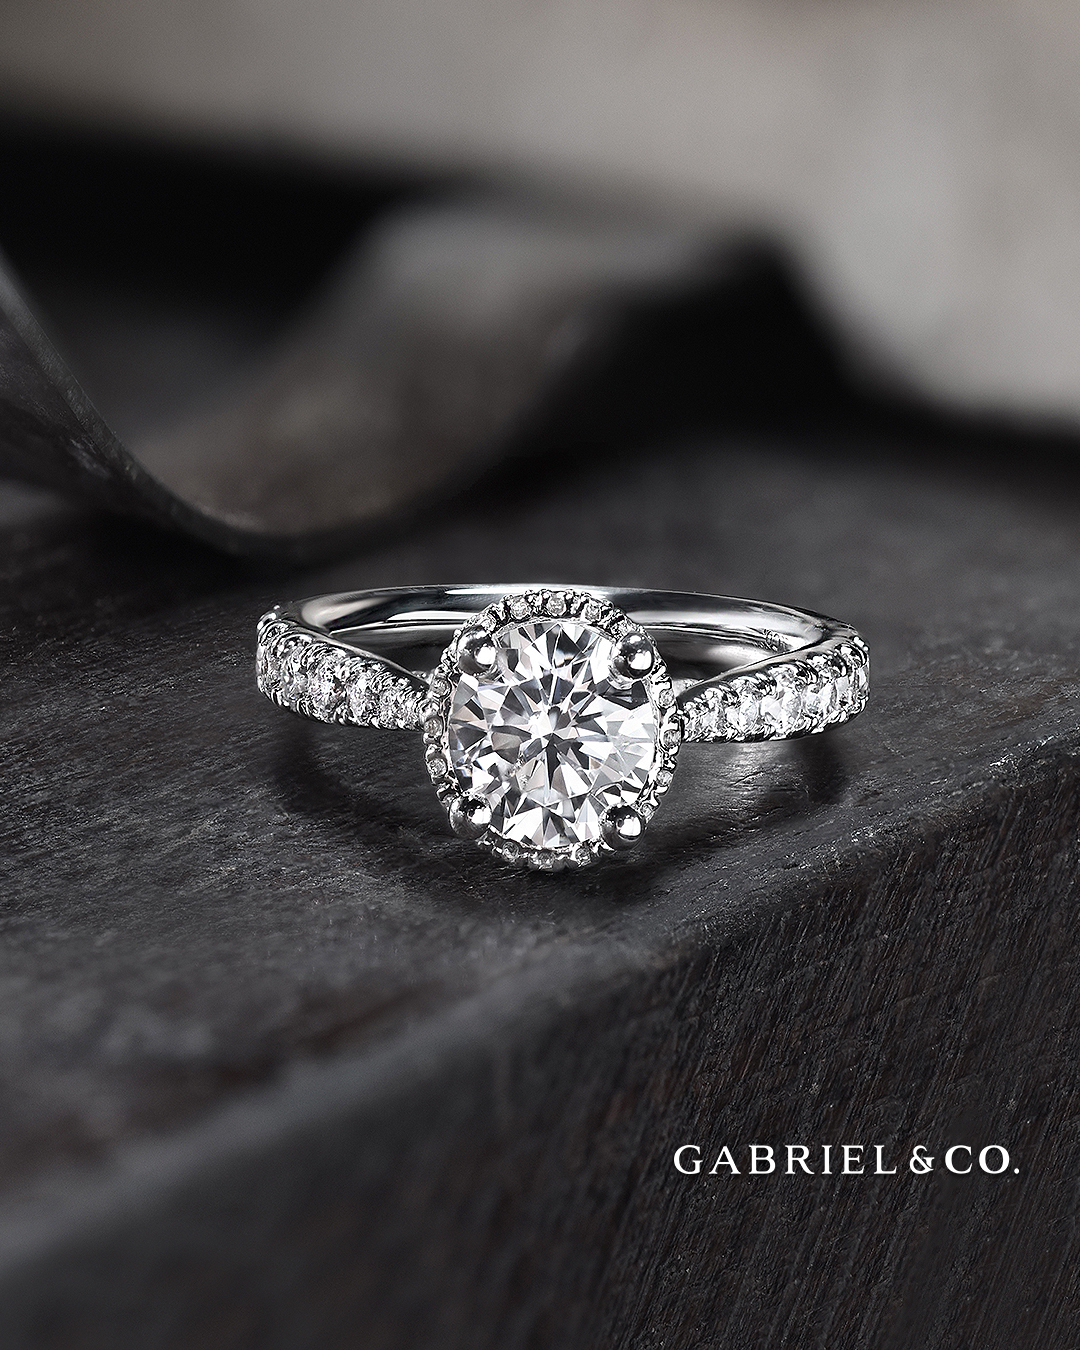 A little history of Halo Engagement Rings